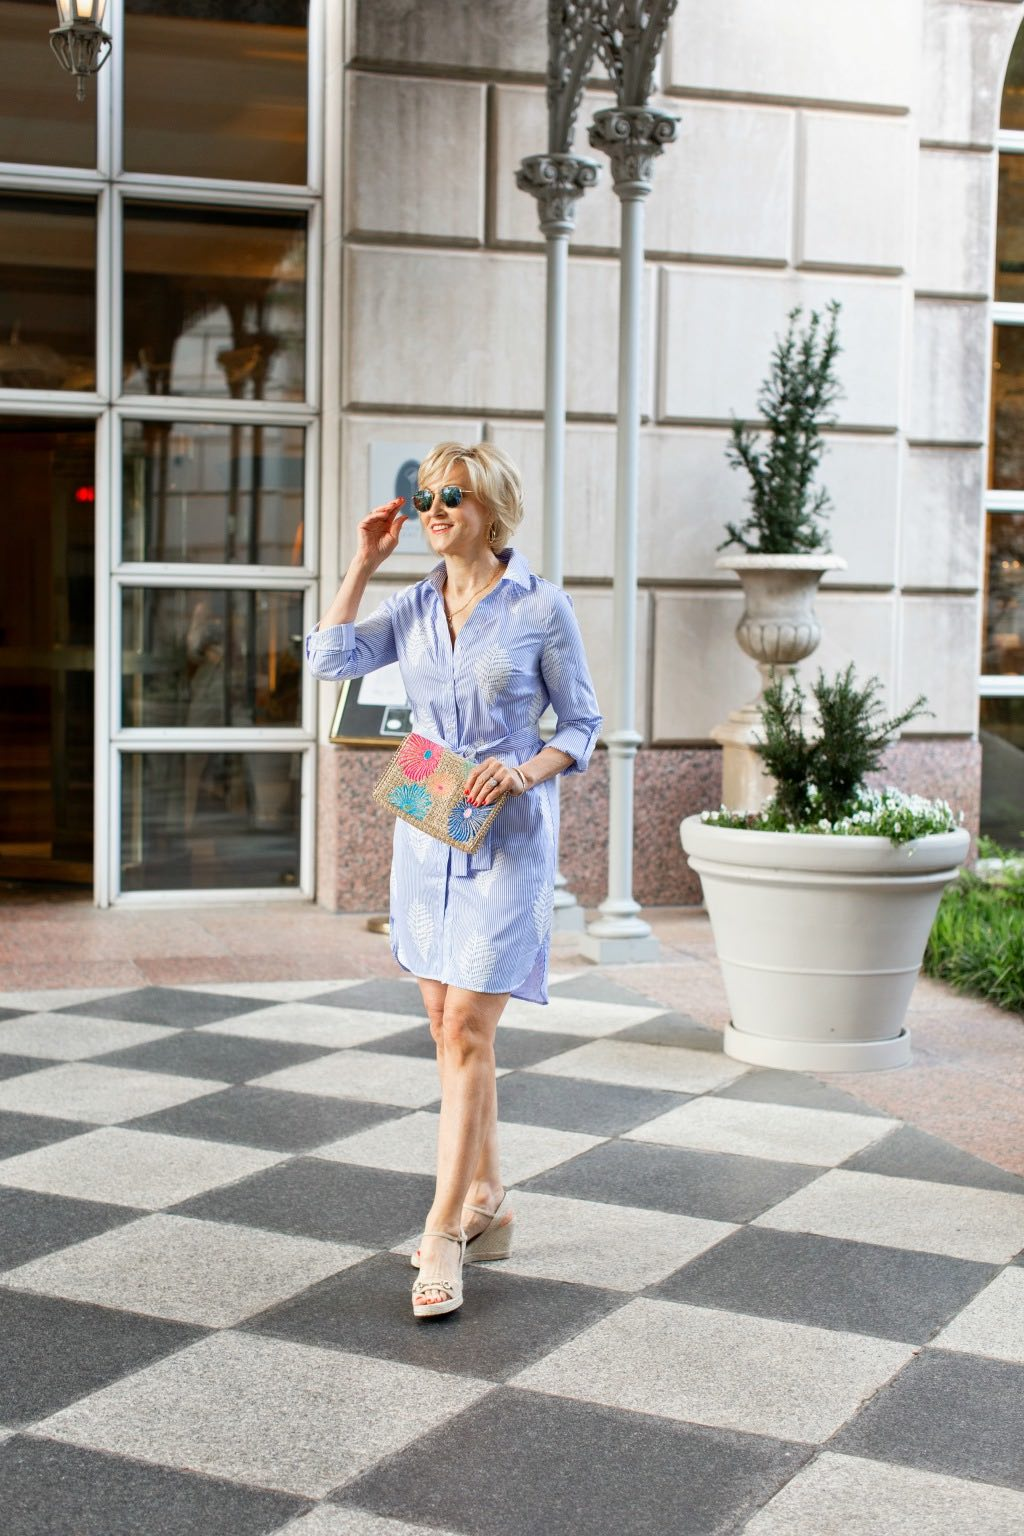 How To Style Blue White Striped Dress